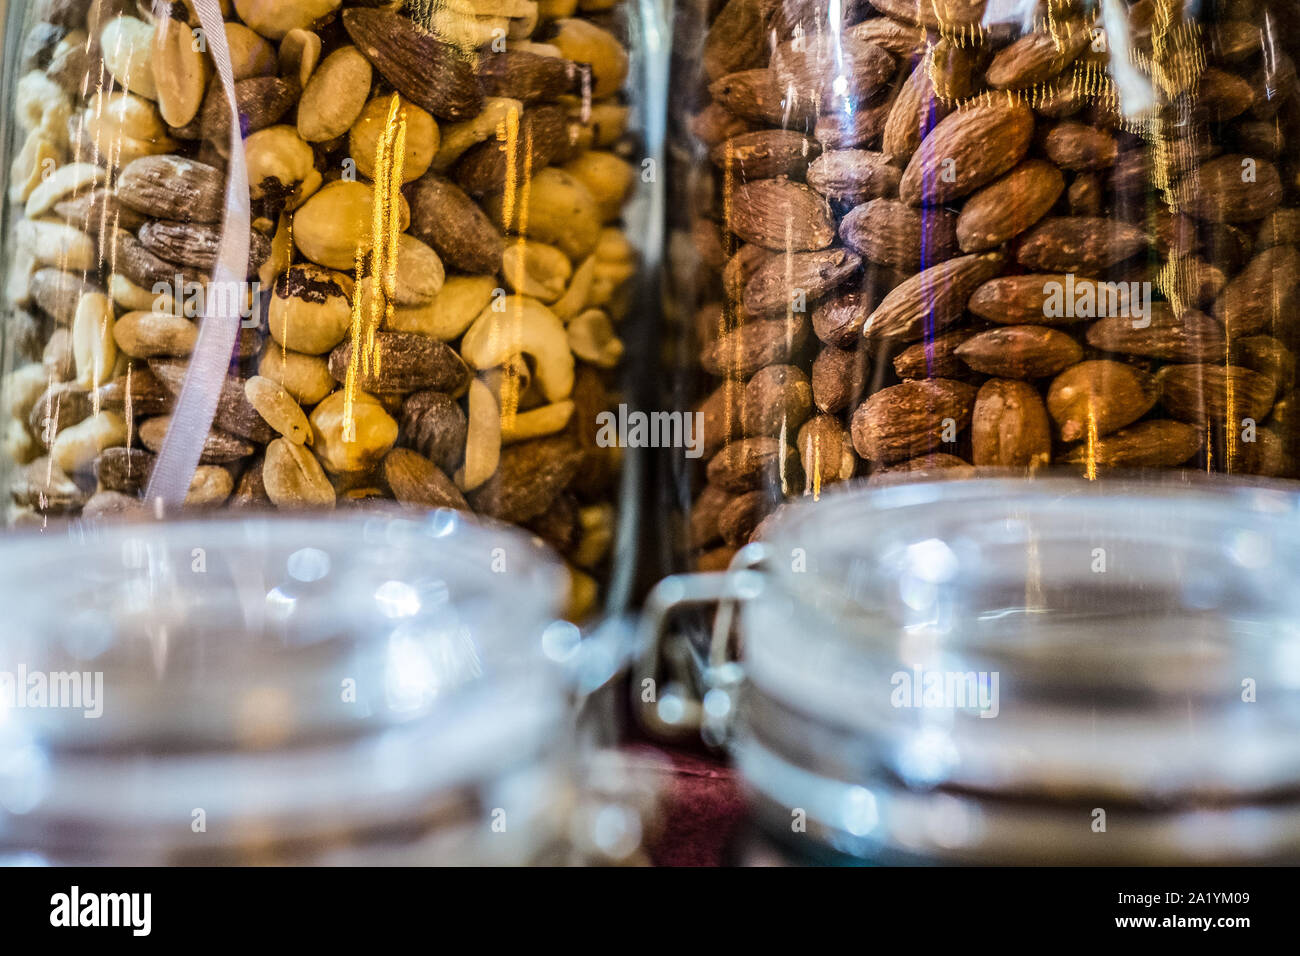 Different types of nuts and seeds in glass jar close up. A variety of nuts in glass jars. Stock Photo